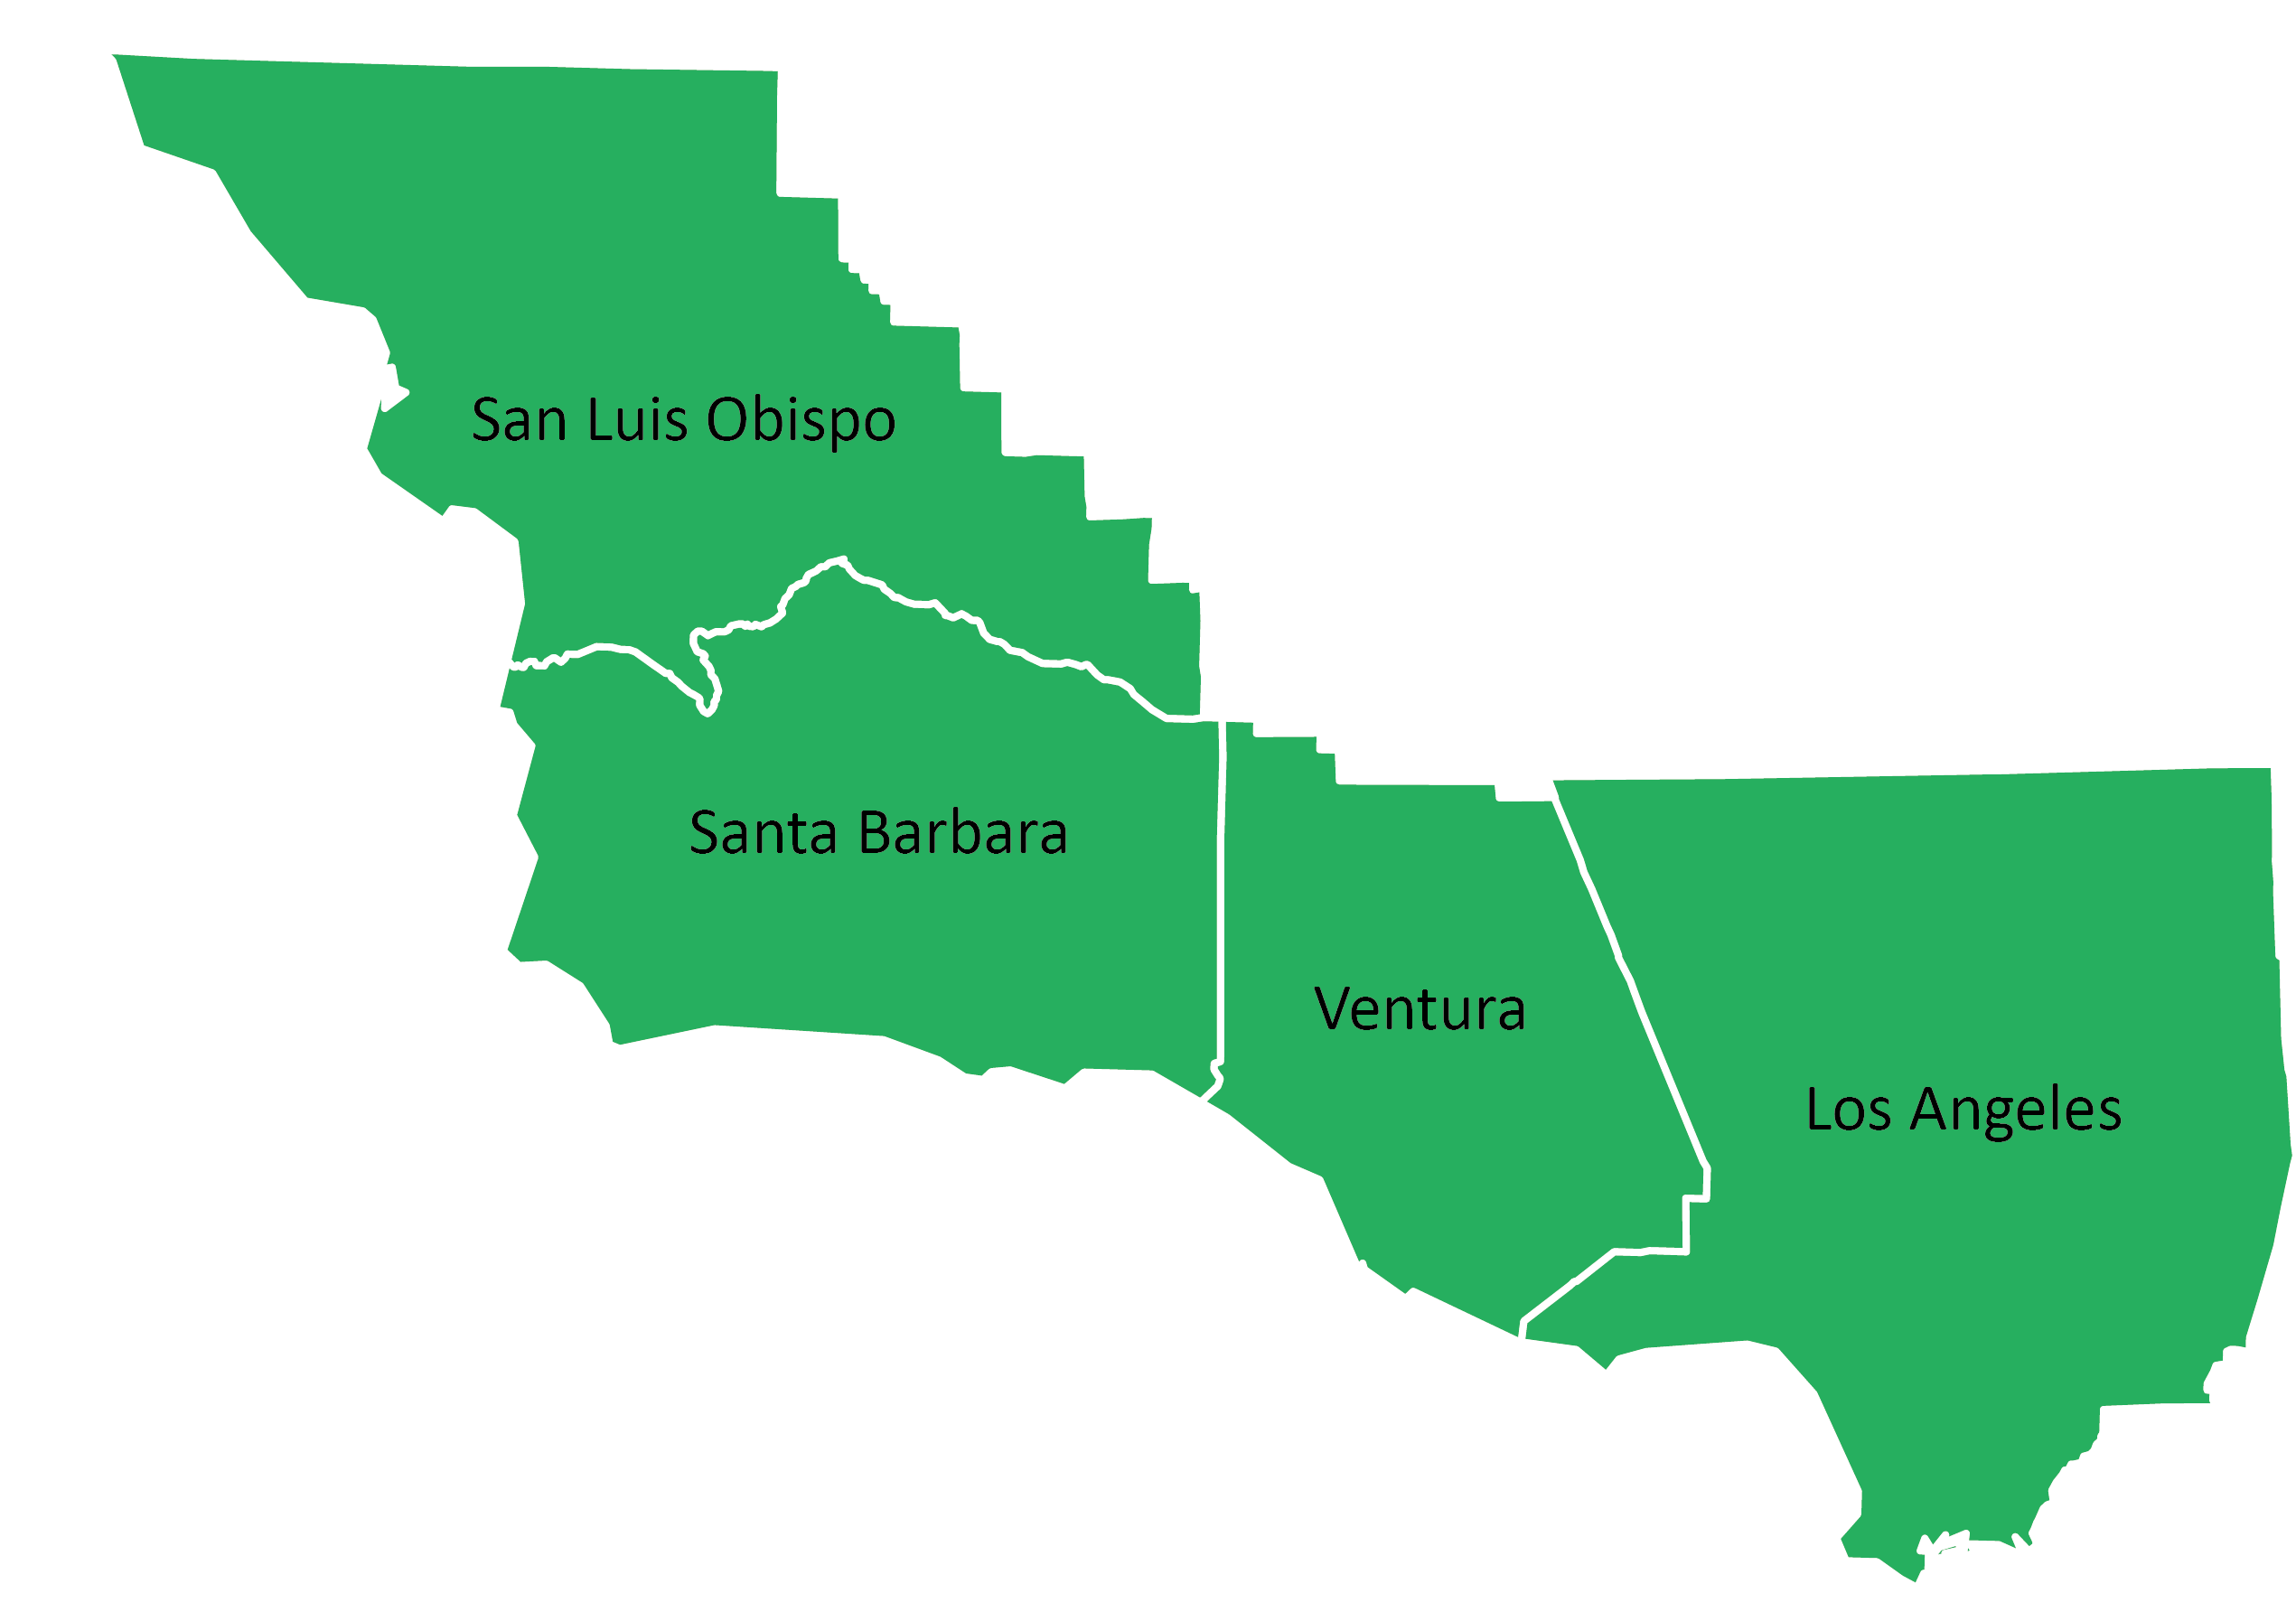 westLAcounties.png